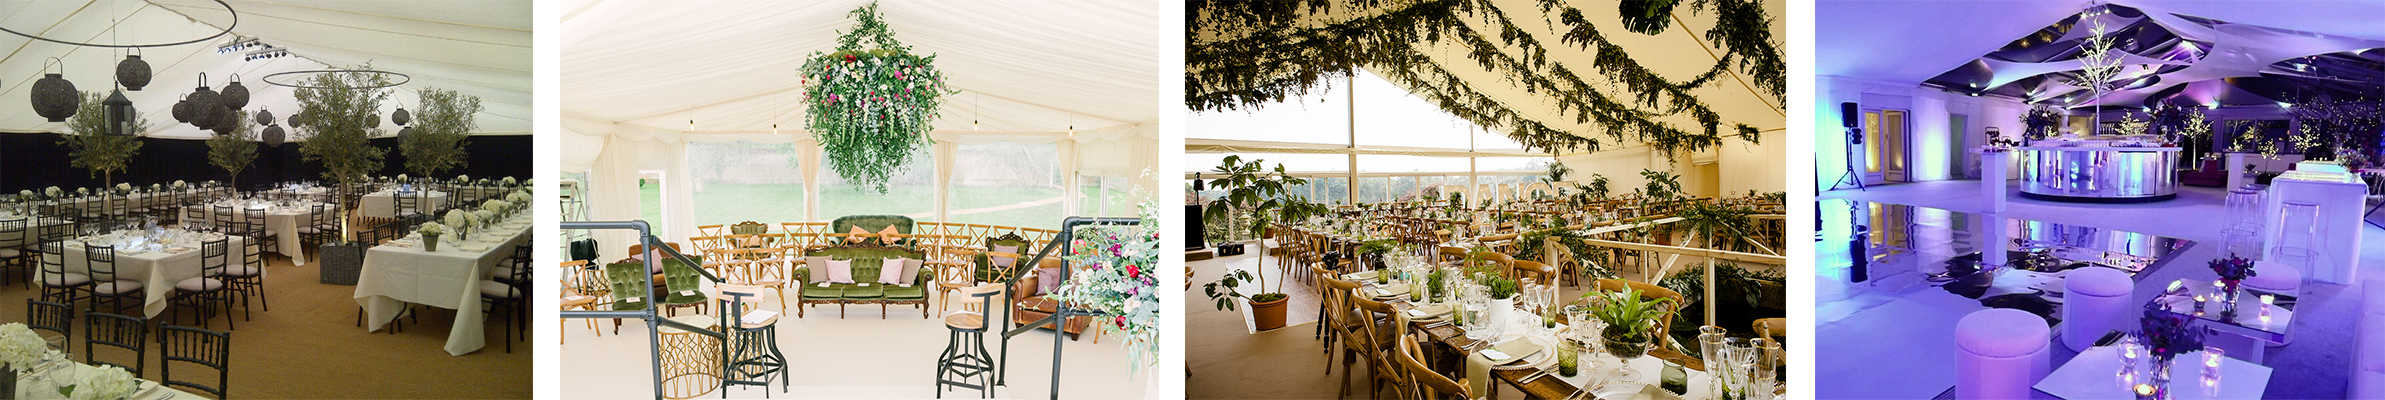 Wedding marquee hire: Different interior marquee decor images